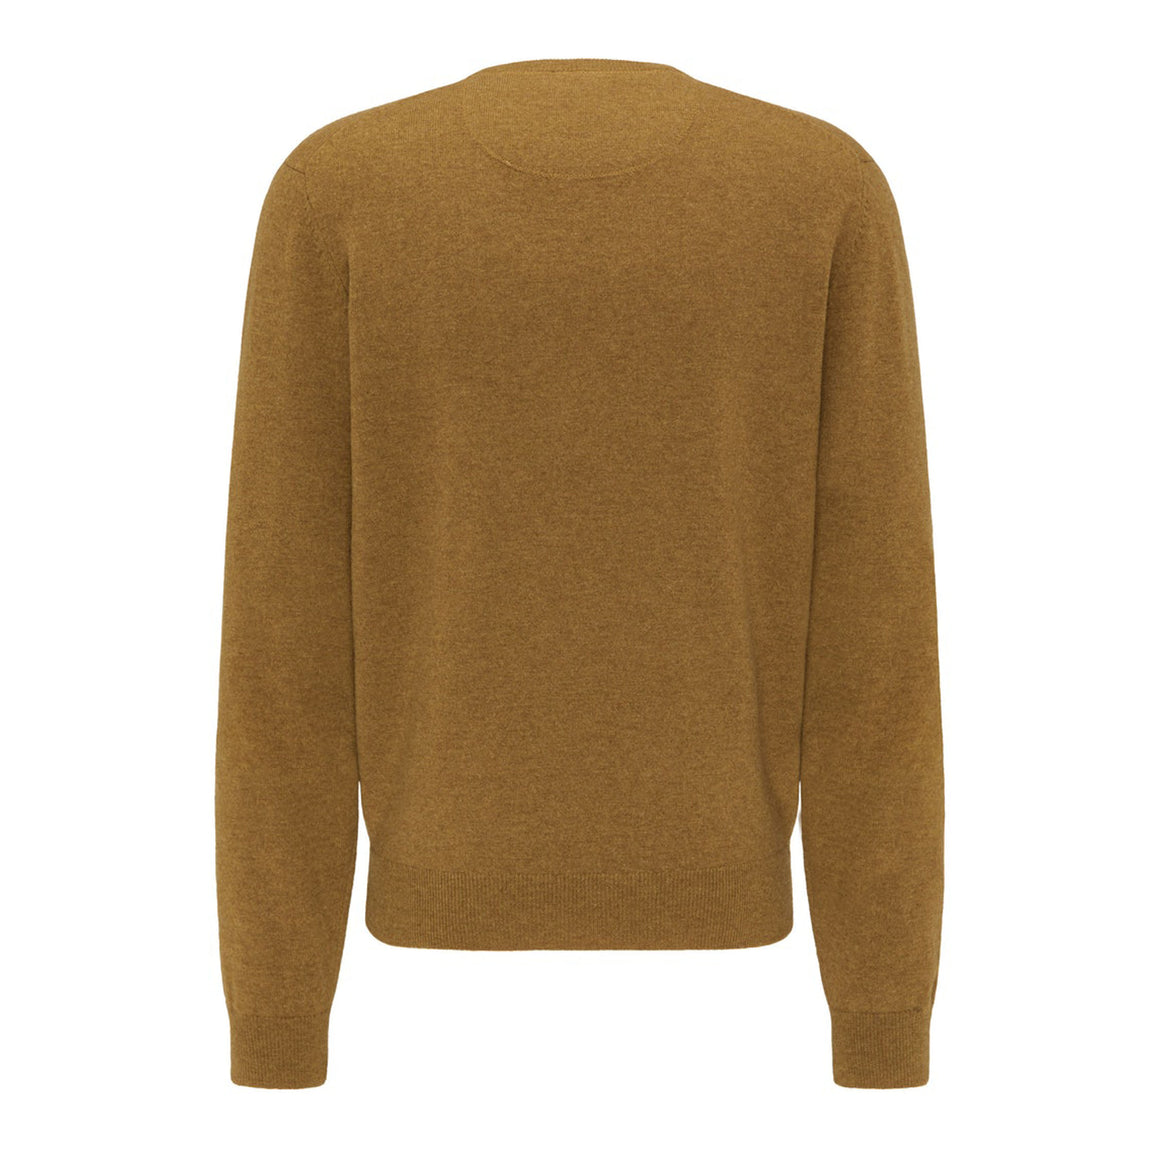 Premium Lambswool O-Neck for Men in Mustard